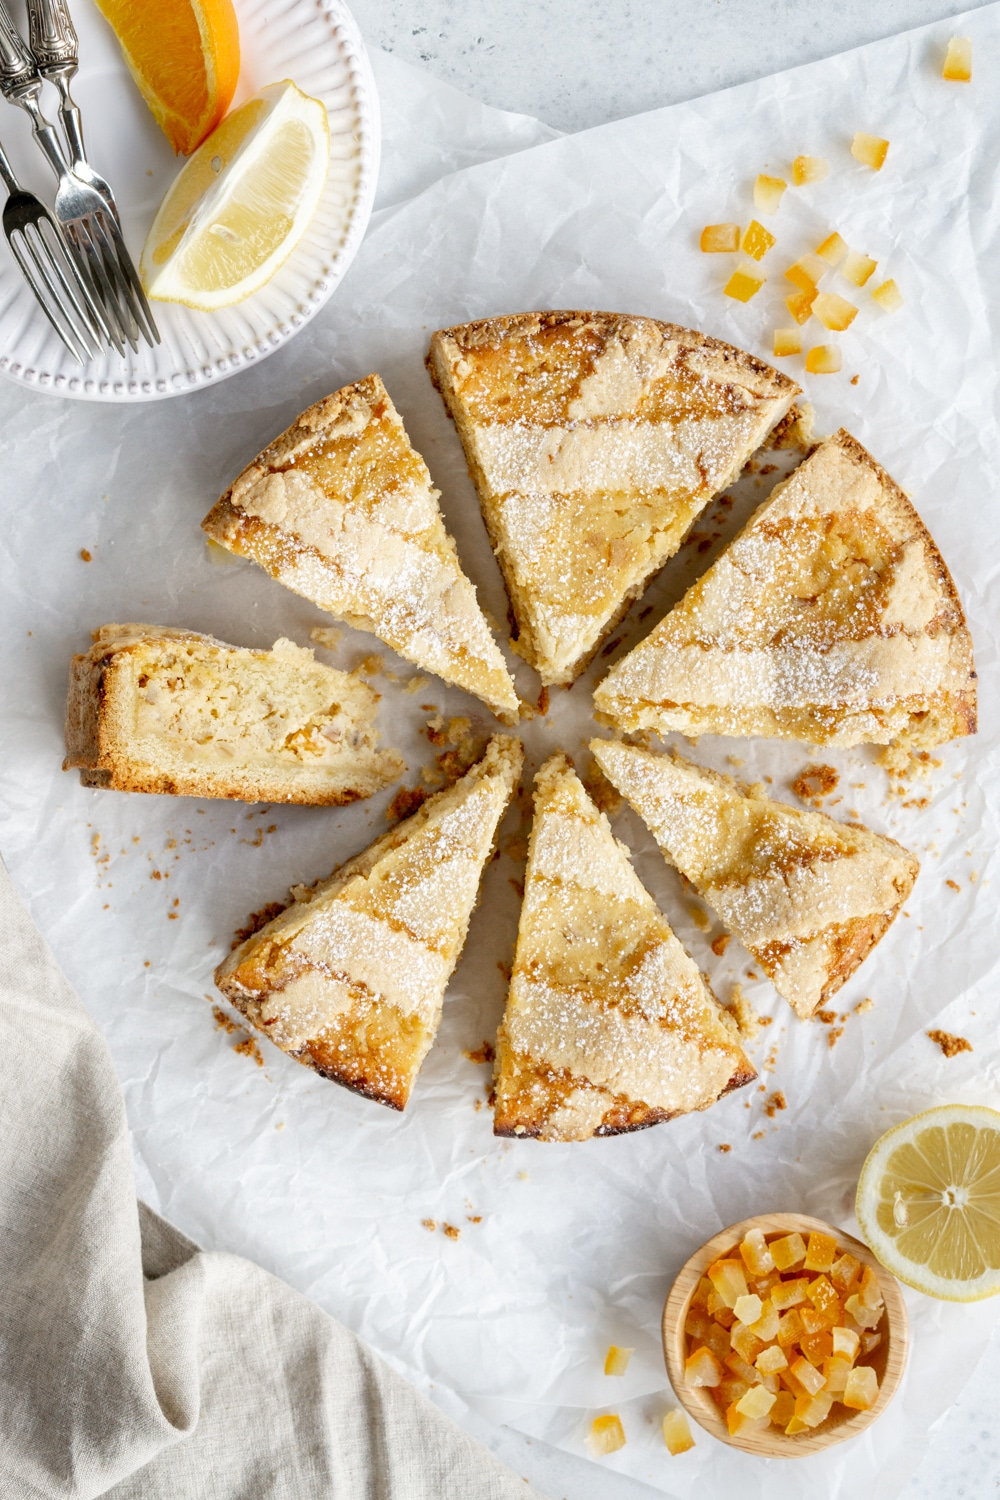 Pastiera napoletana cut into 7 slices with a lemon and candied oranges to the side